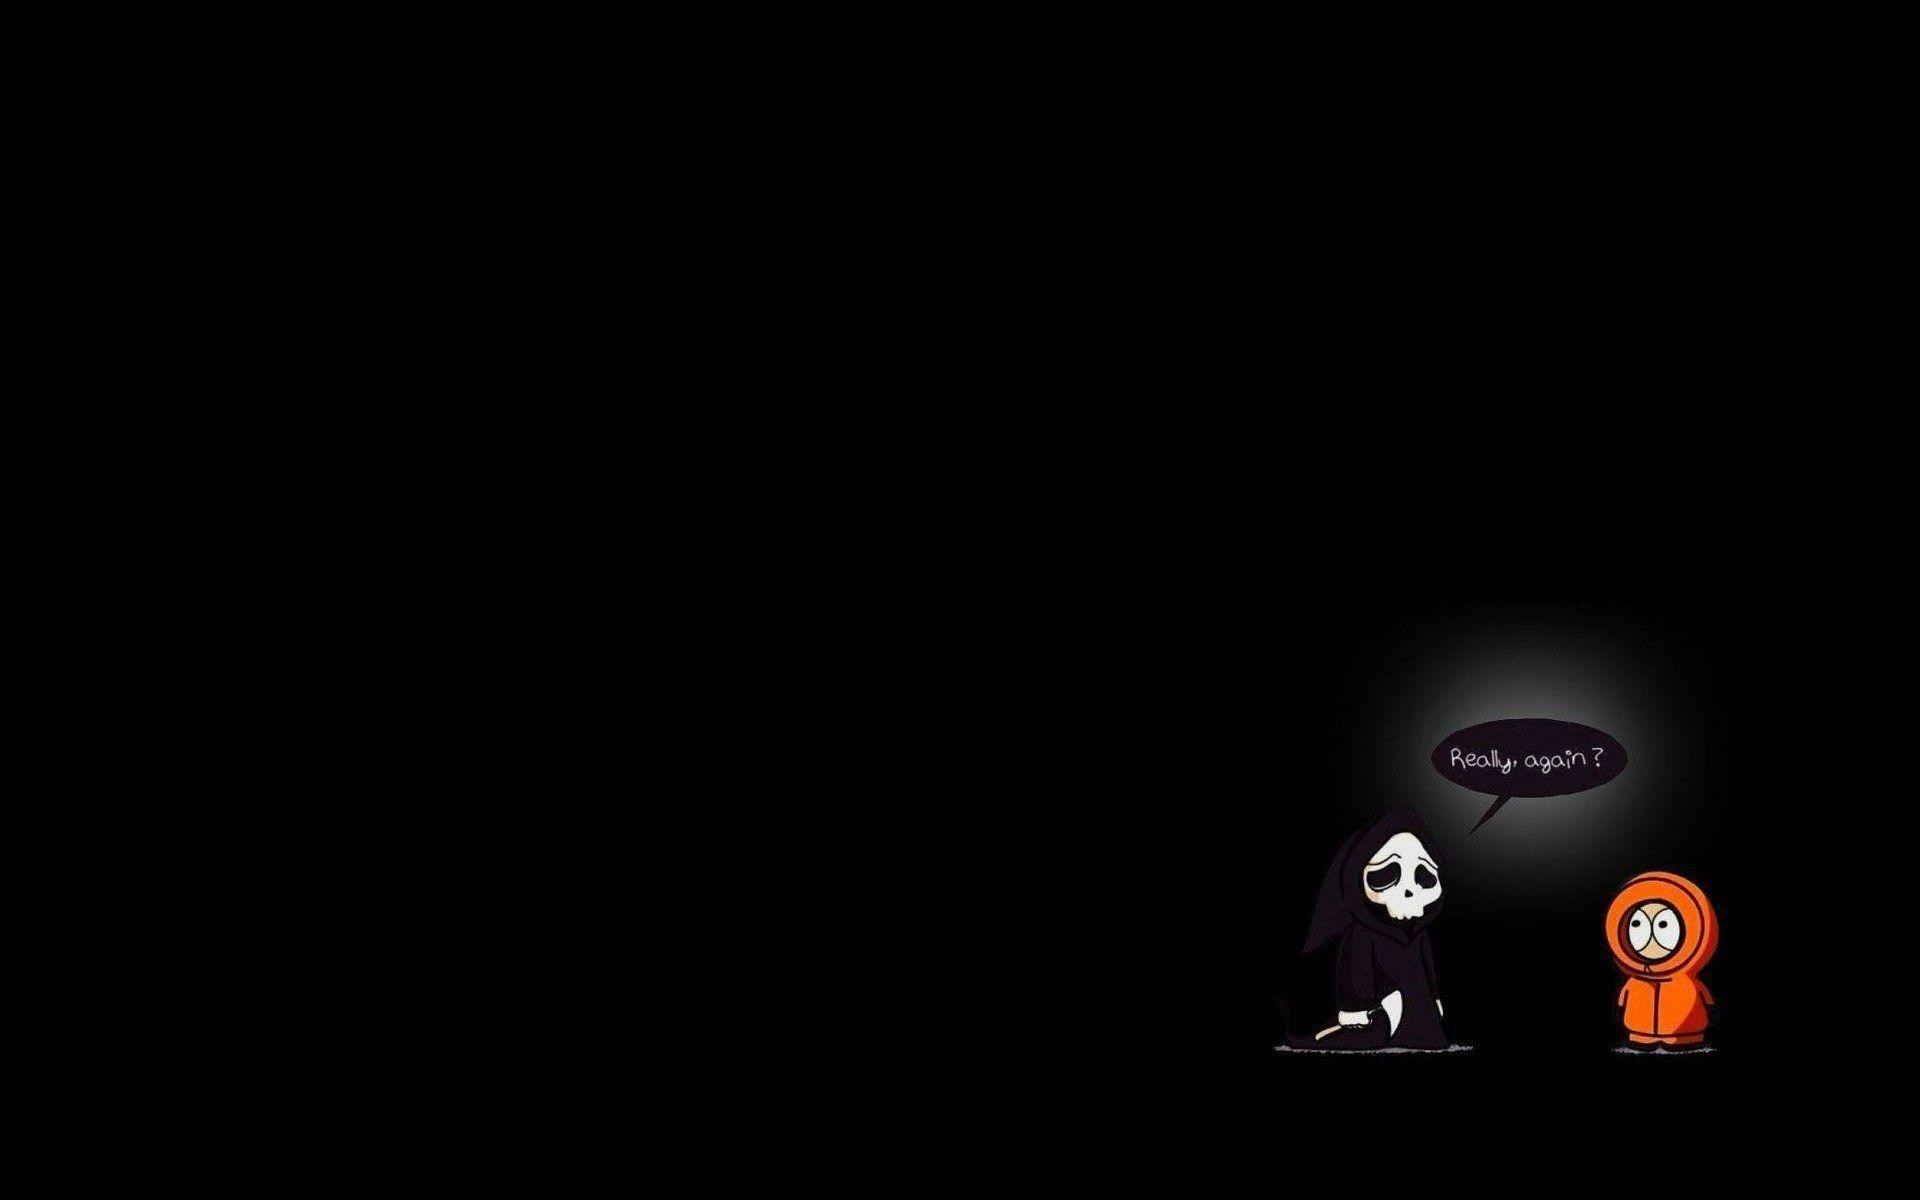 1920x1200 South Park funny Kenny McCormick clean wallpaper |  .